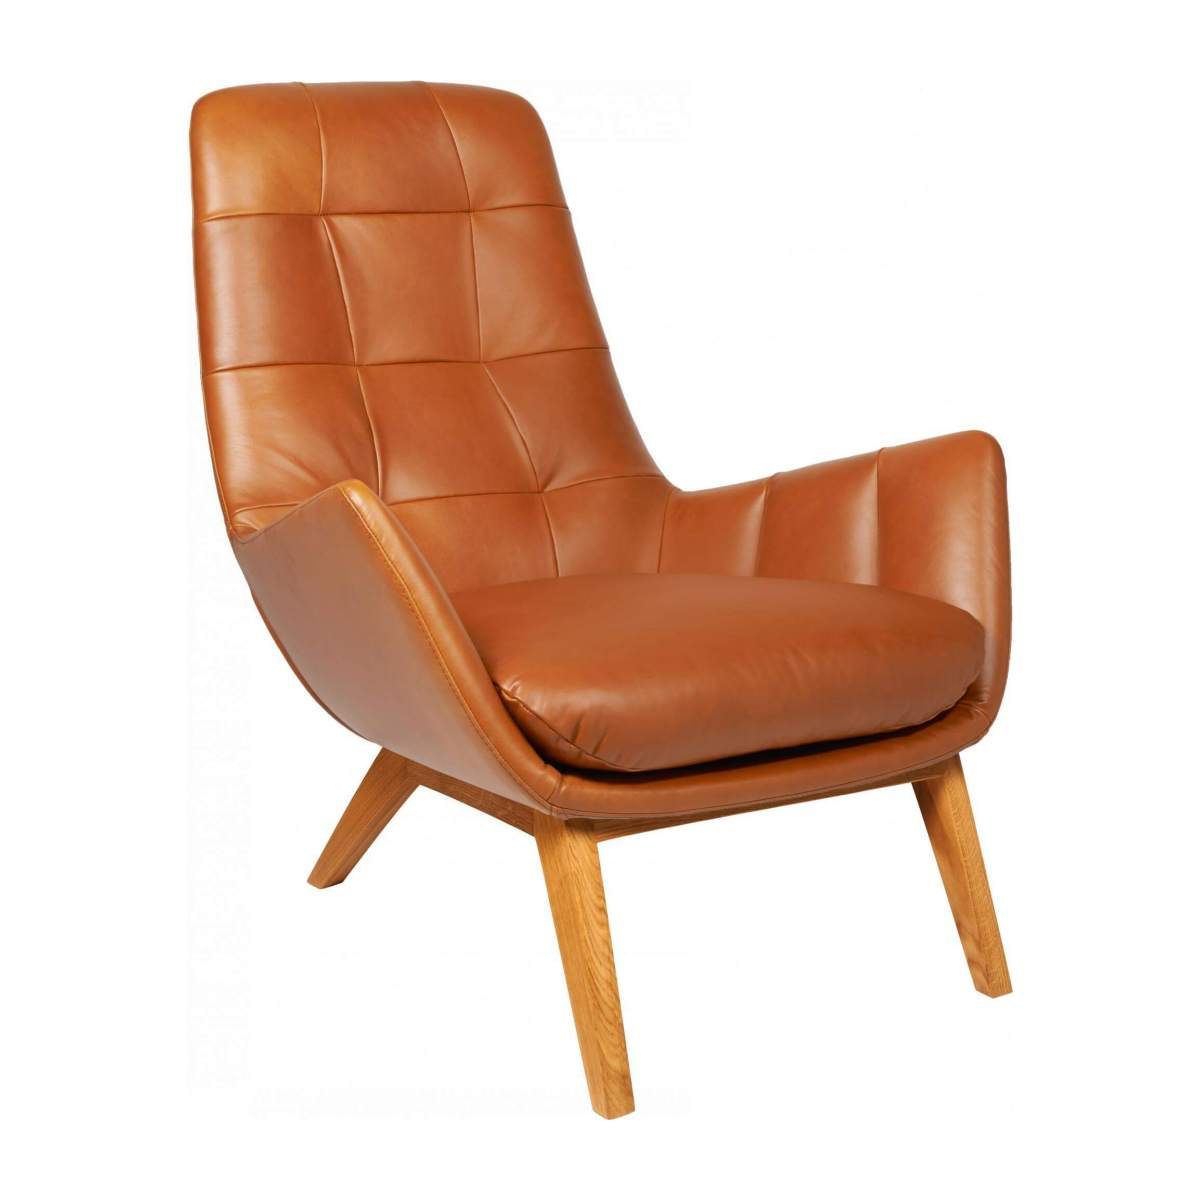 Armchair in Vintage aniline leather, old Chestnut with oak legs n°2